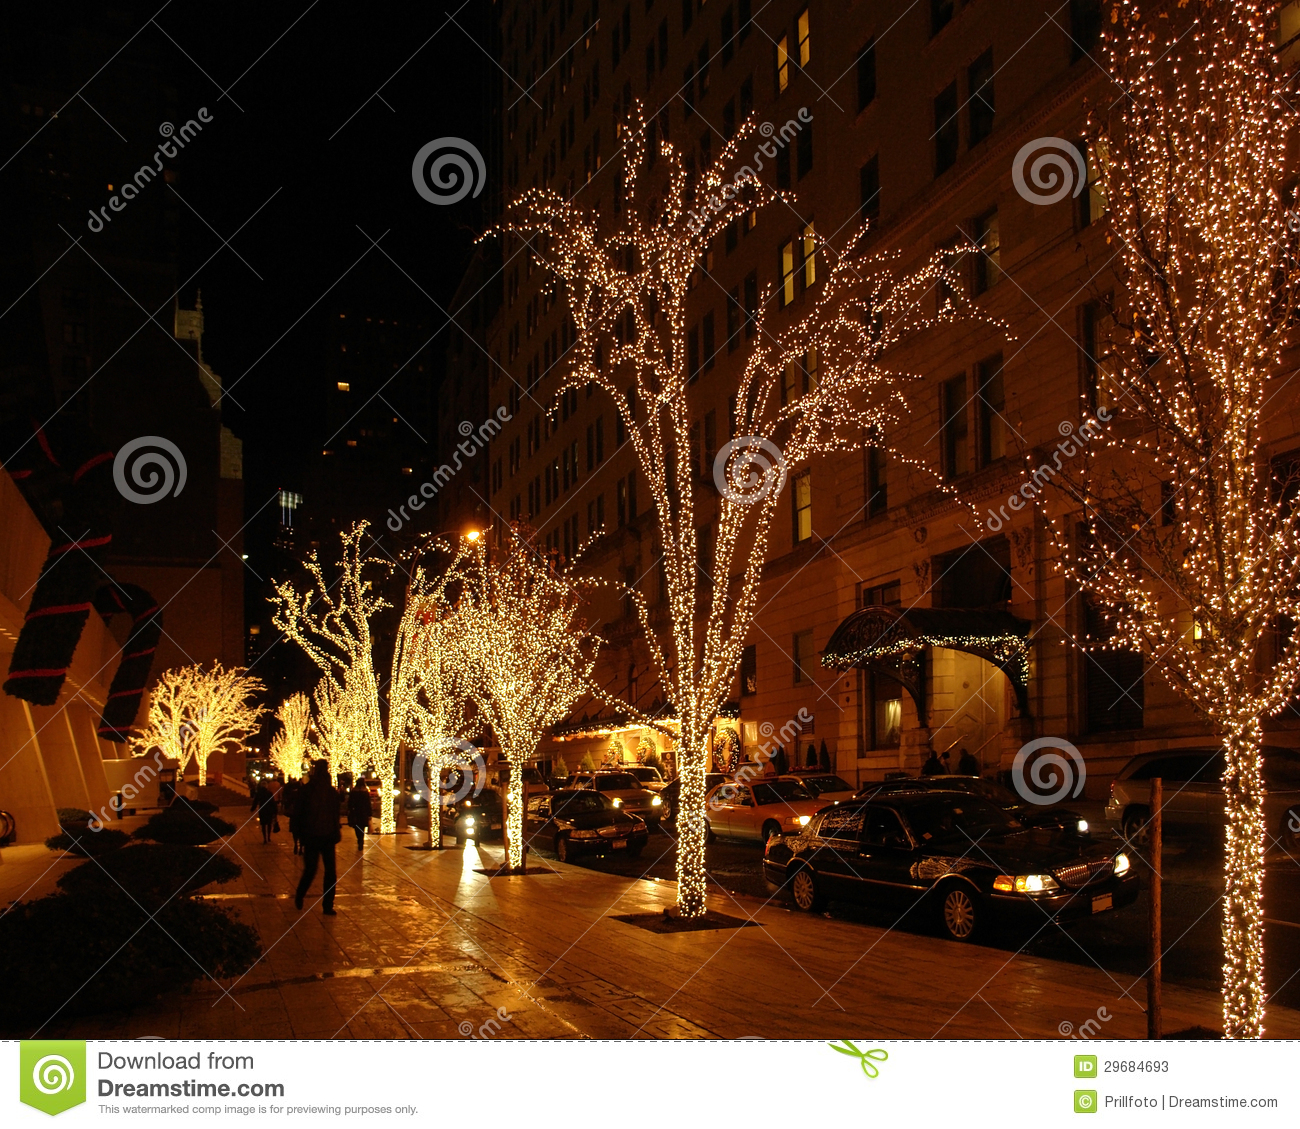 New York During Christmas Time.New York Street Scenery At Christmas Time Stock Image